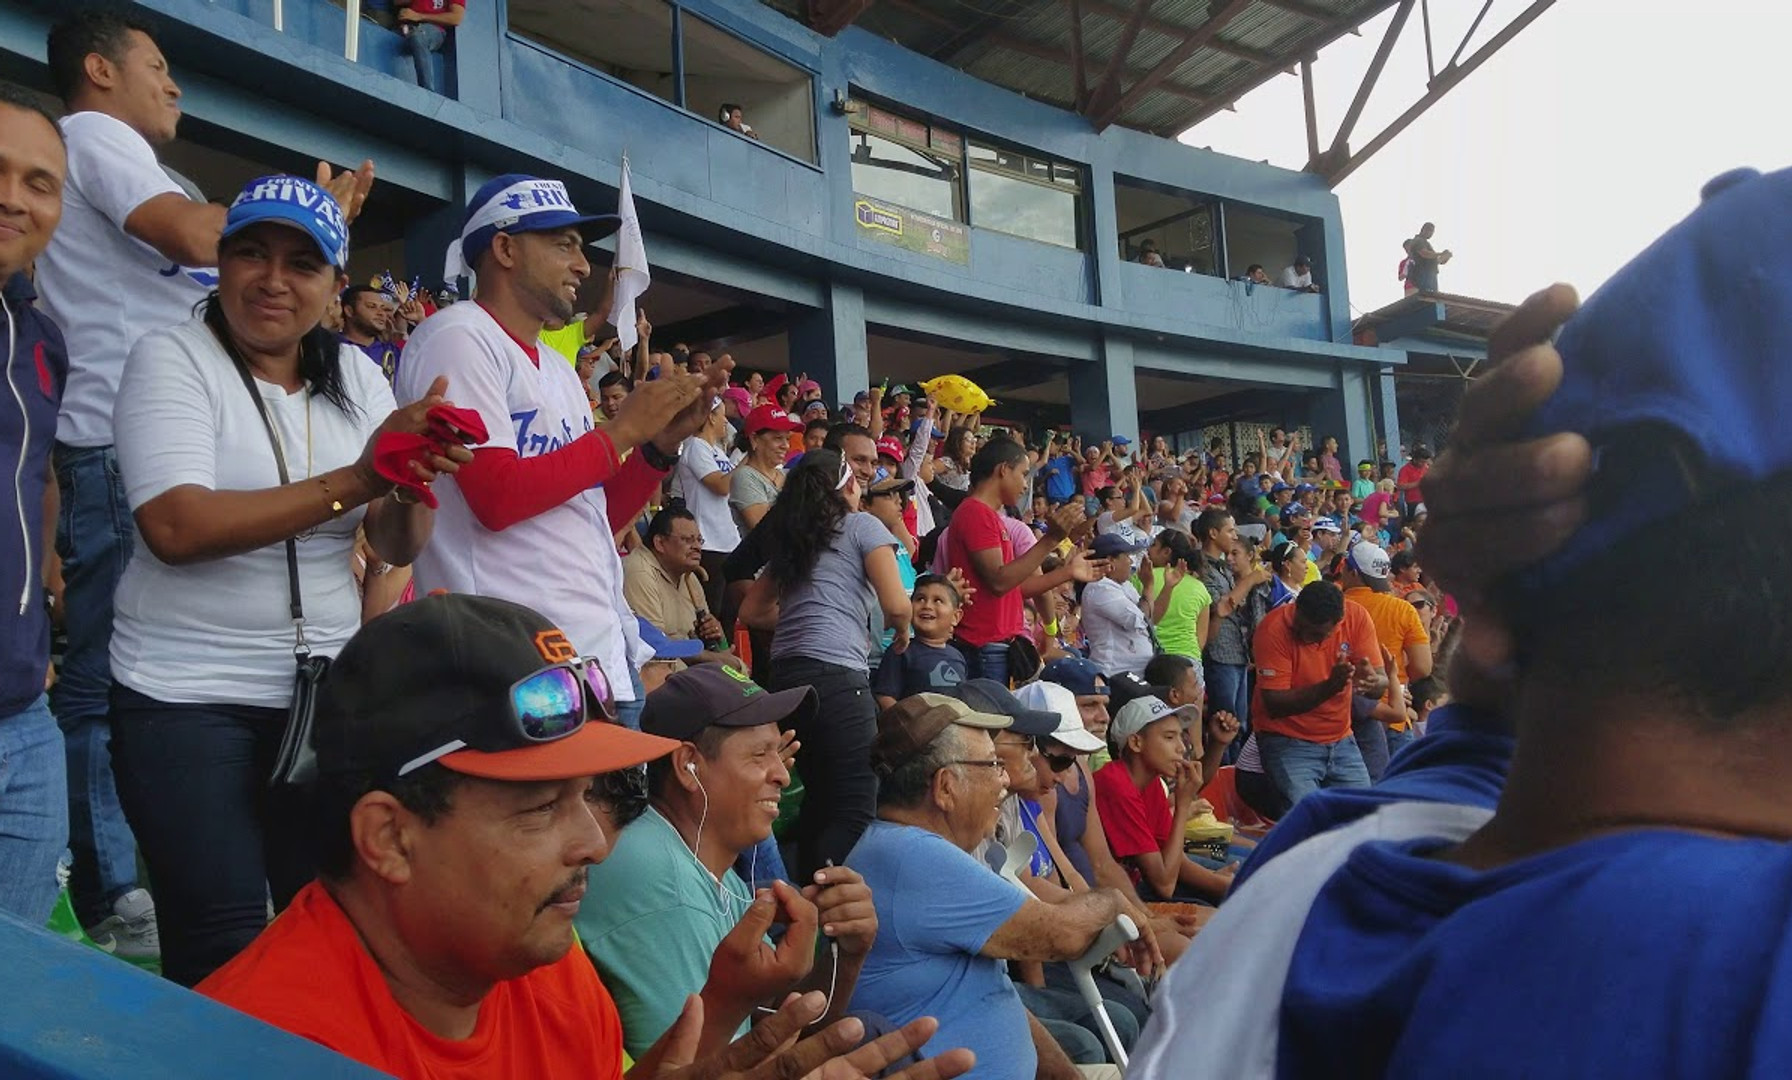 Stadium Sounds: Game Saving Strikeout by Frente Sur at the POMARES World Series, Frente Sur vs. Leon in Rivas, Nicaragua